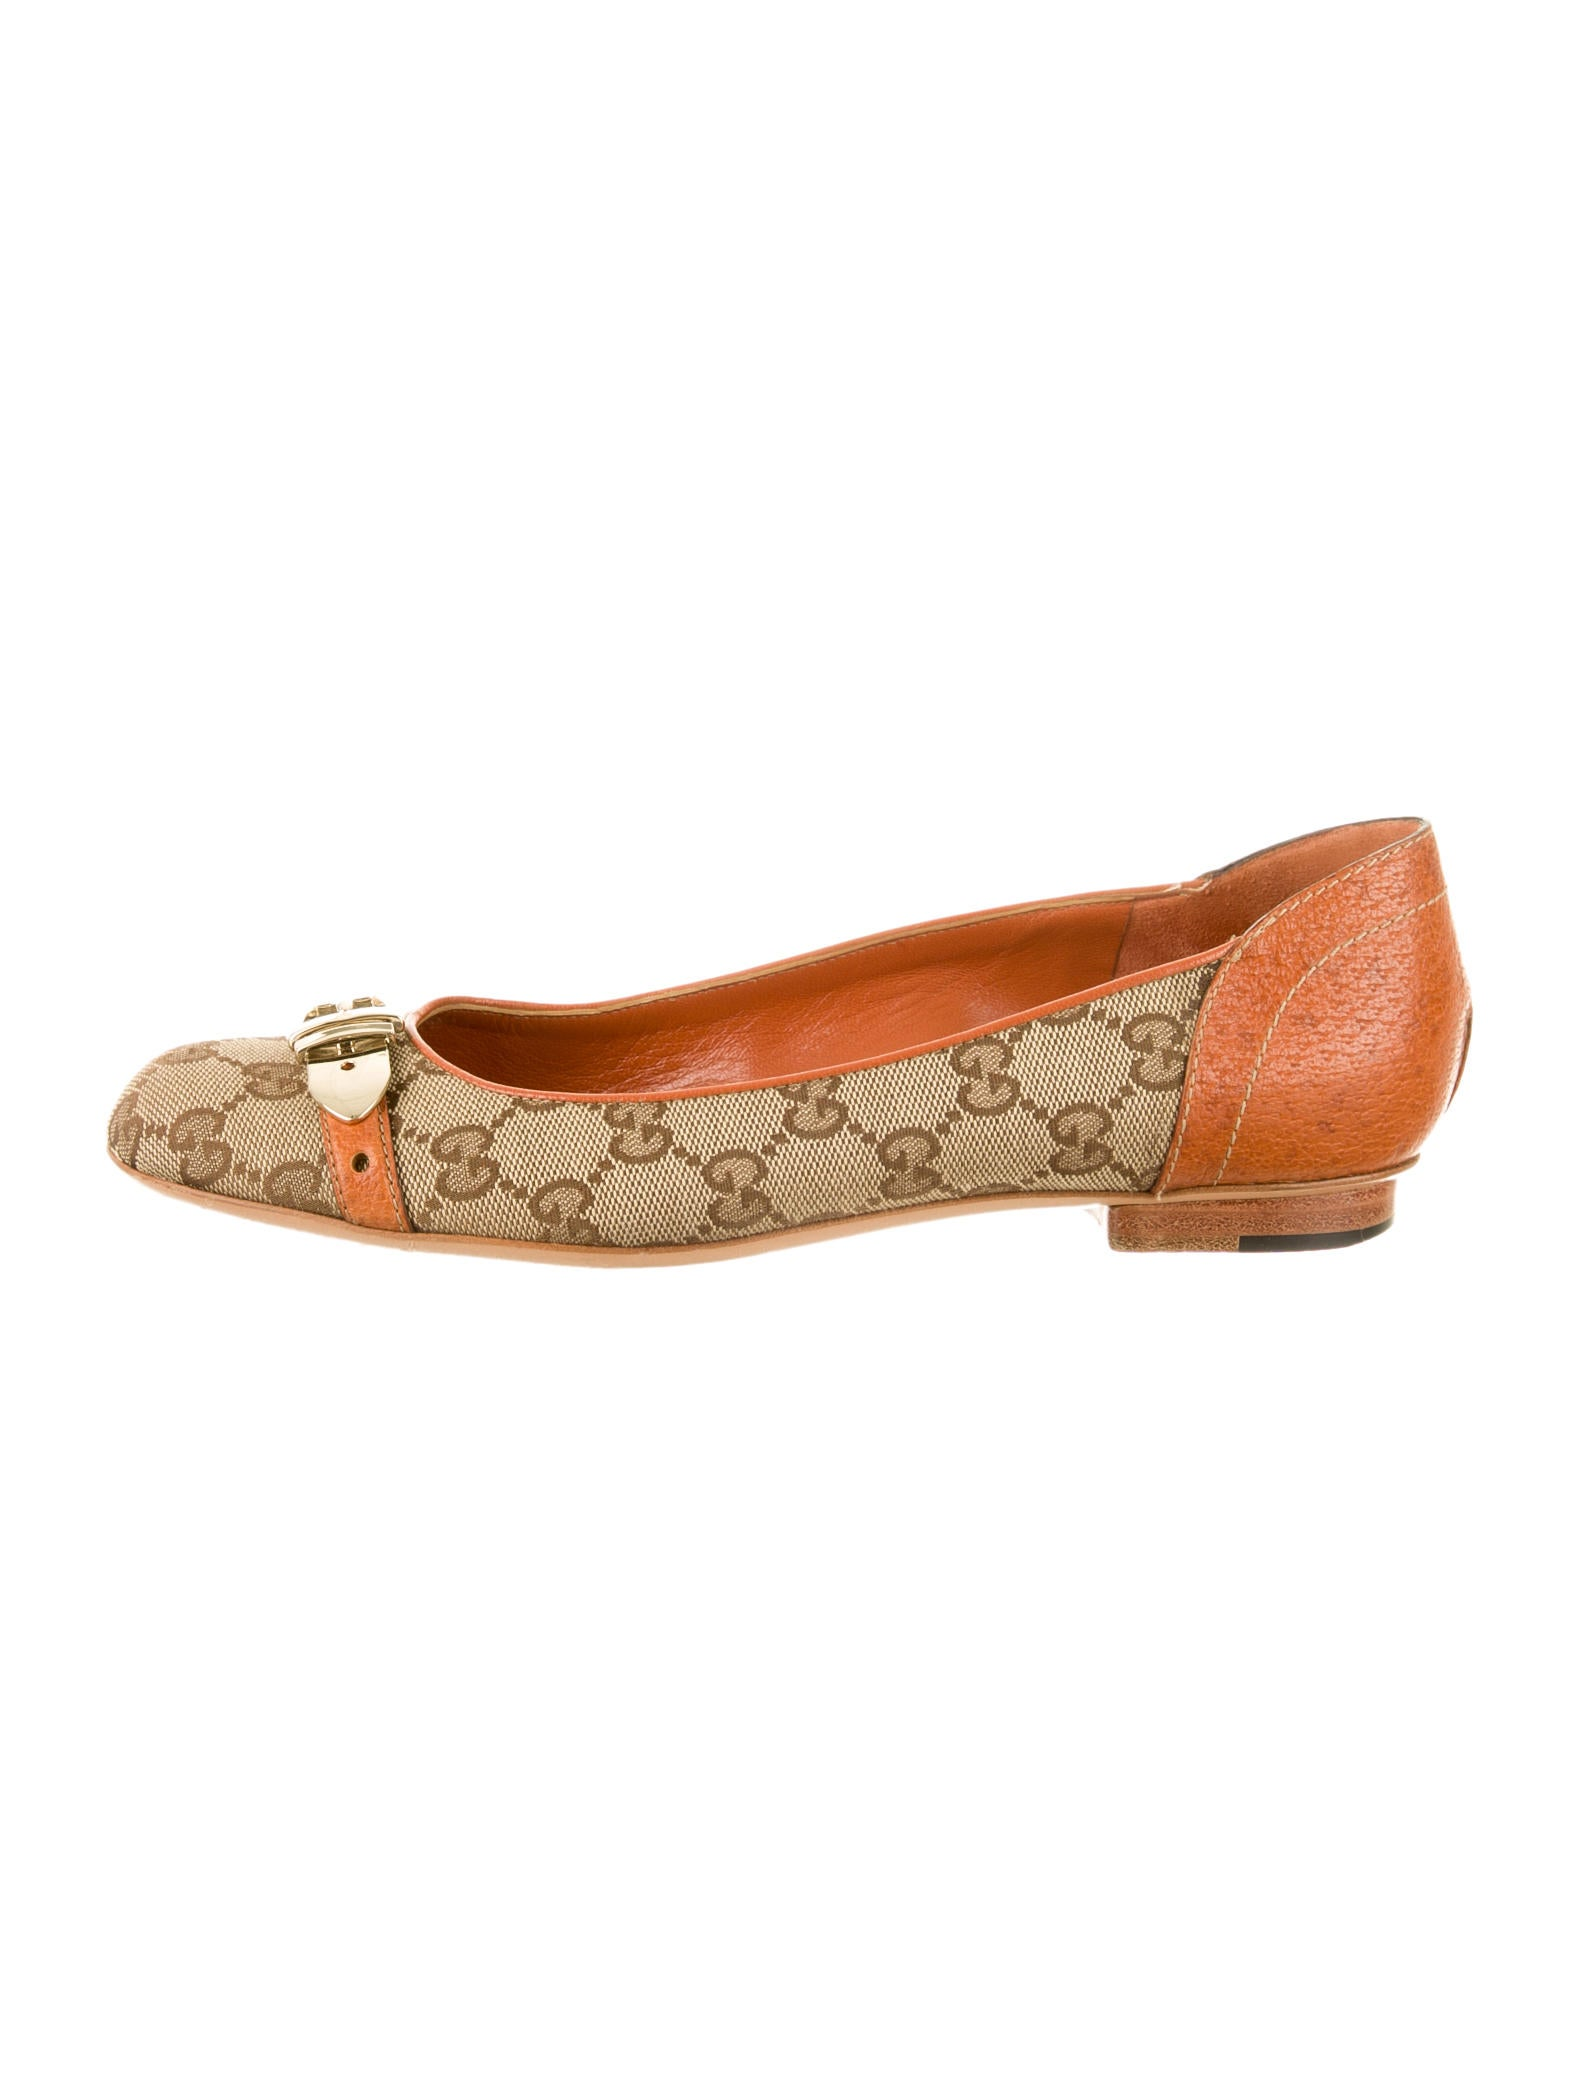 Gucci Flats - Shoes - GUC49613 | The RealReal